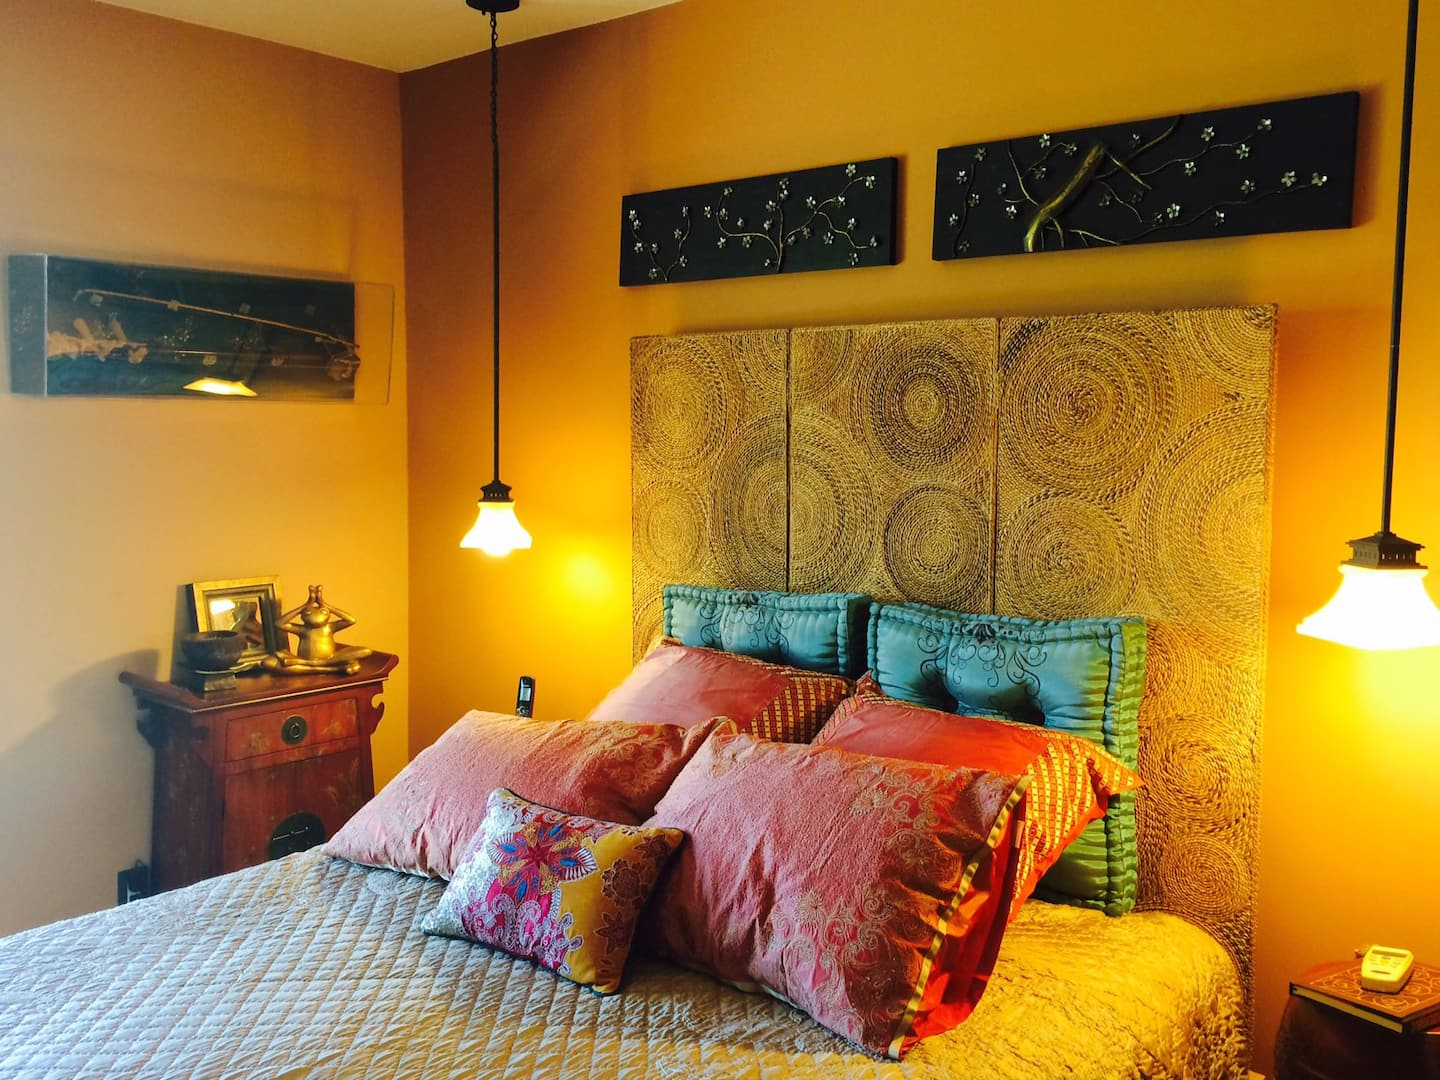 Bedroom with pendant lights